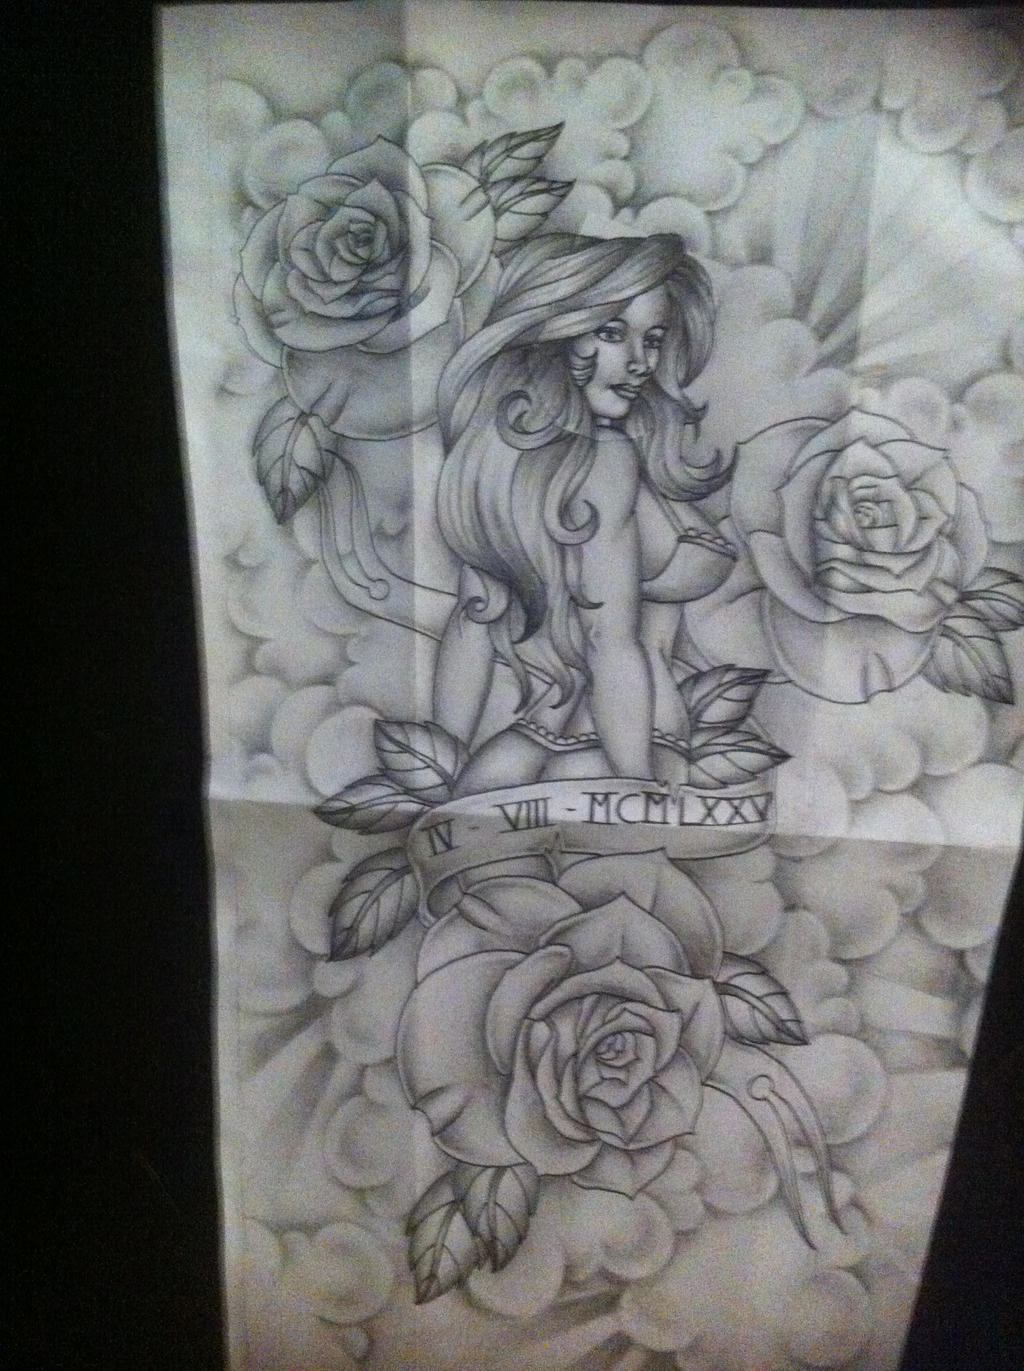 Pinup with roses full sleeve tattoo design by tattoosuzette on DeviantArt